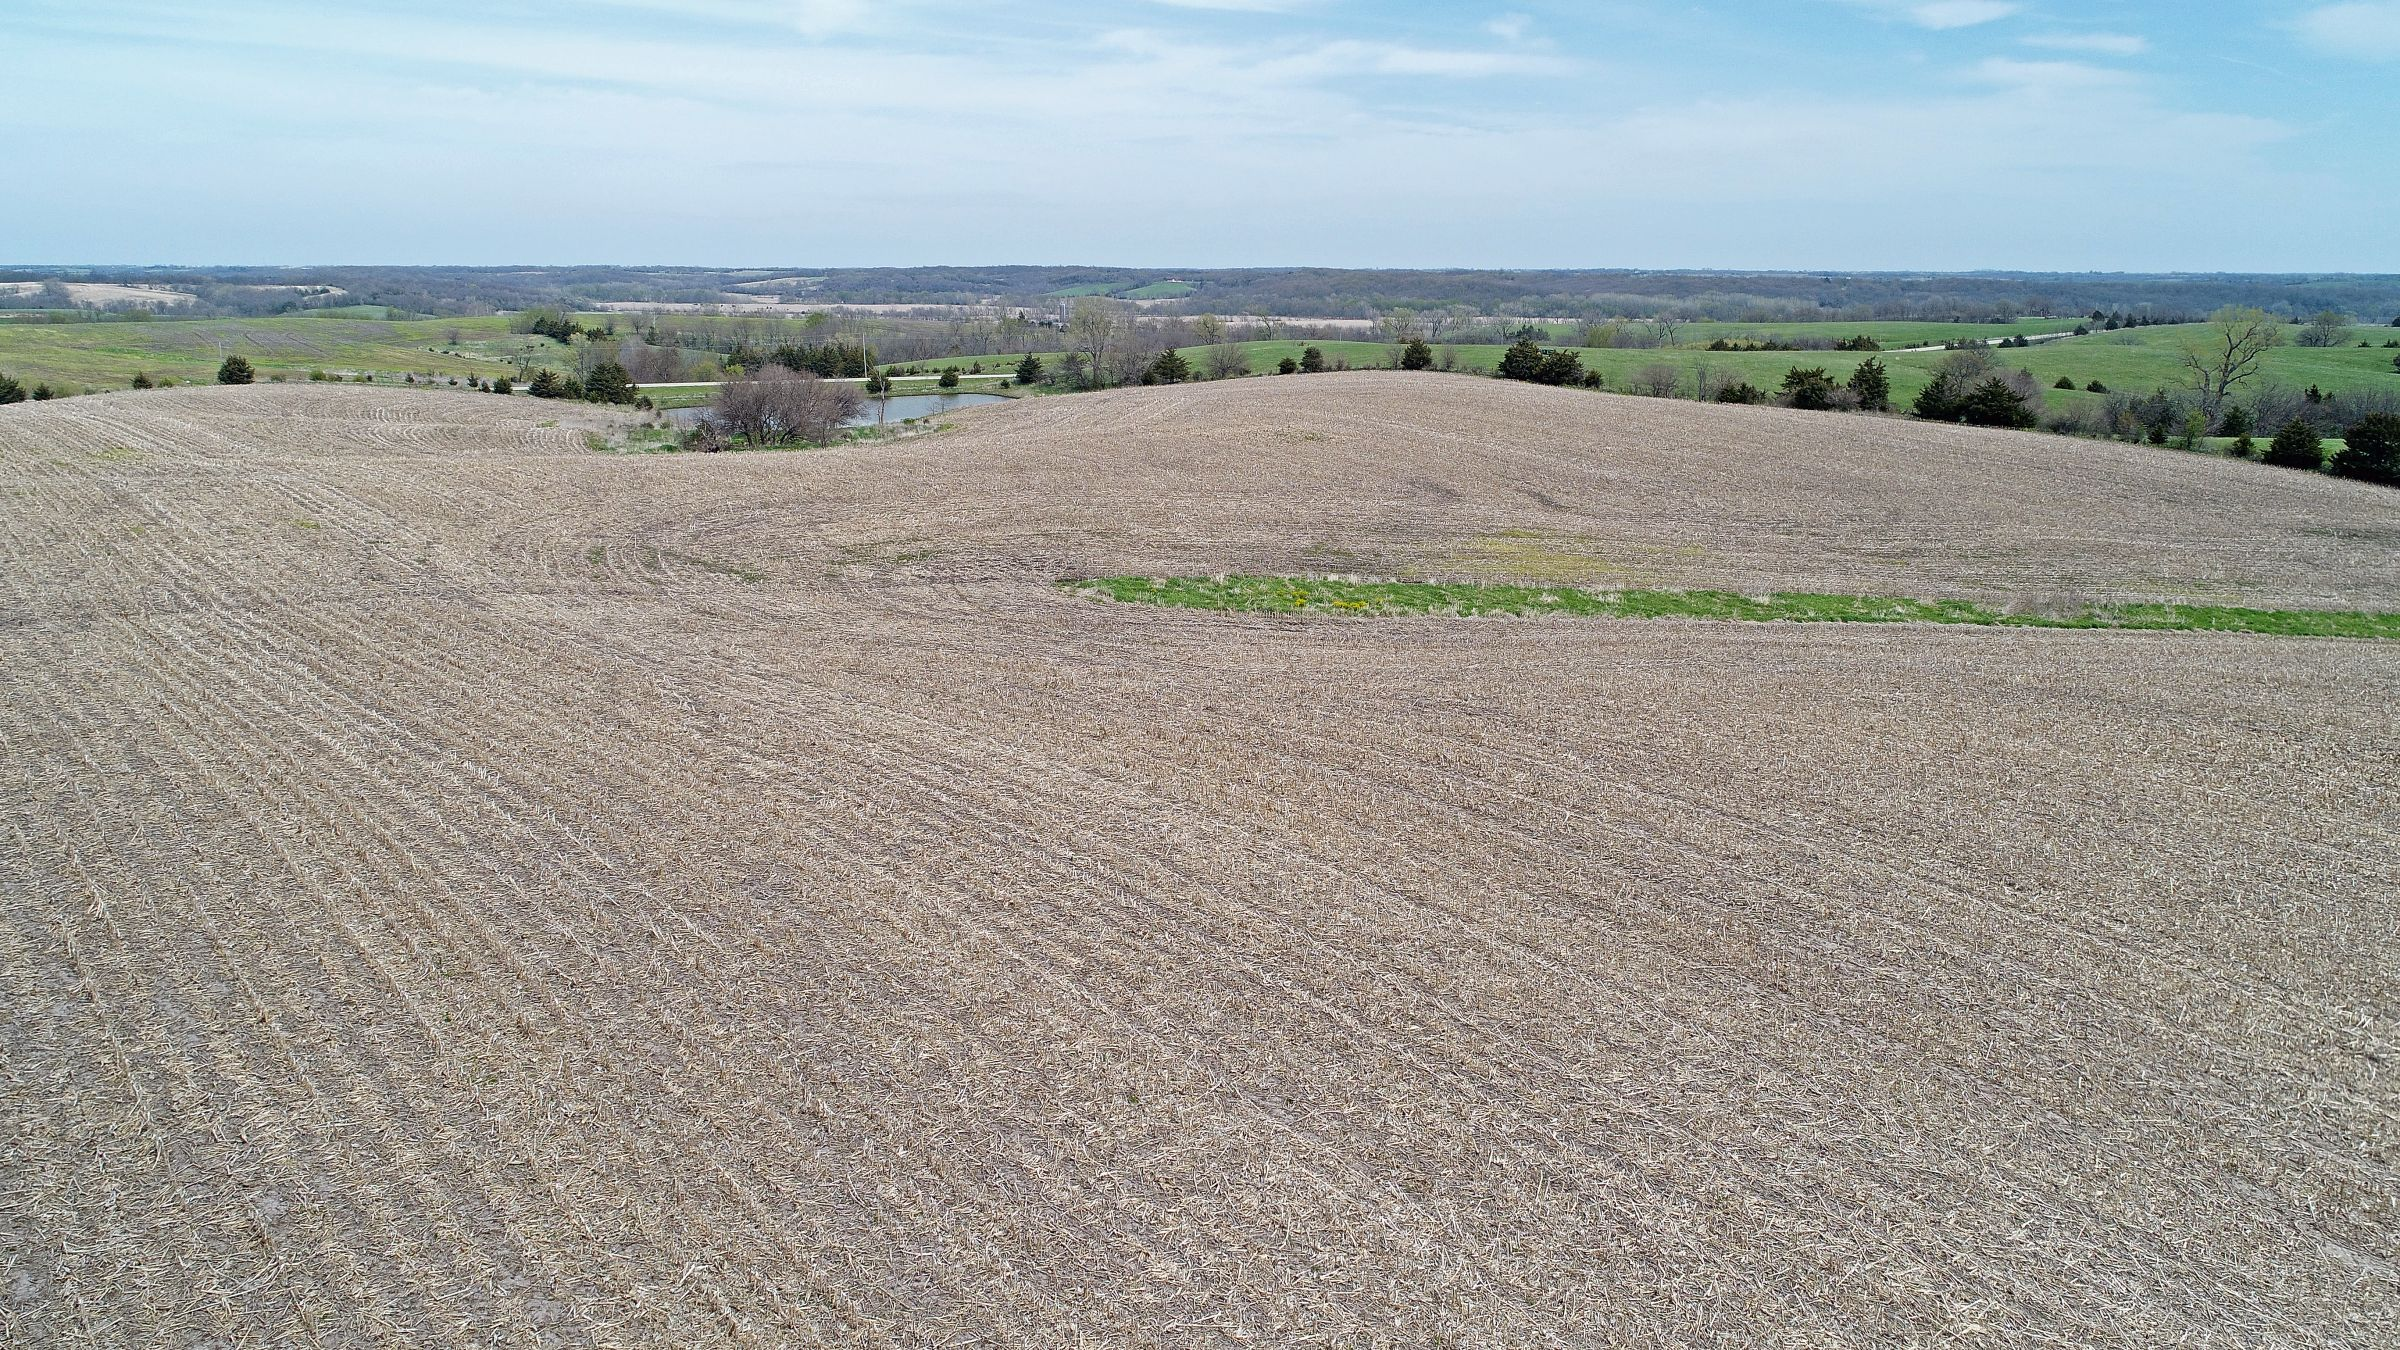 land-decatur-county-iowa-39-acres-listing-number-15495-0-2021-04-27-215247.JPG